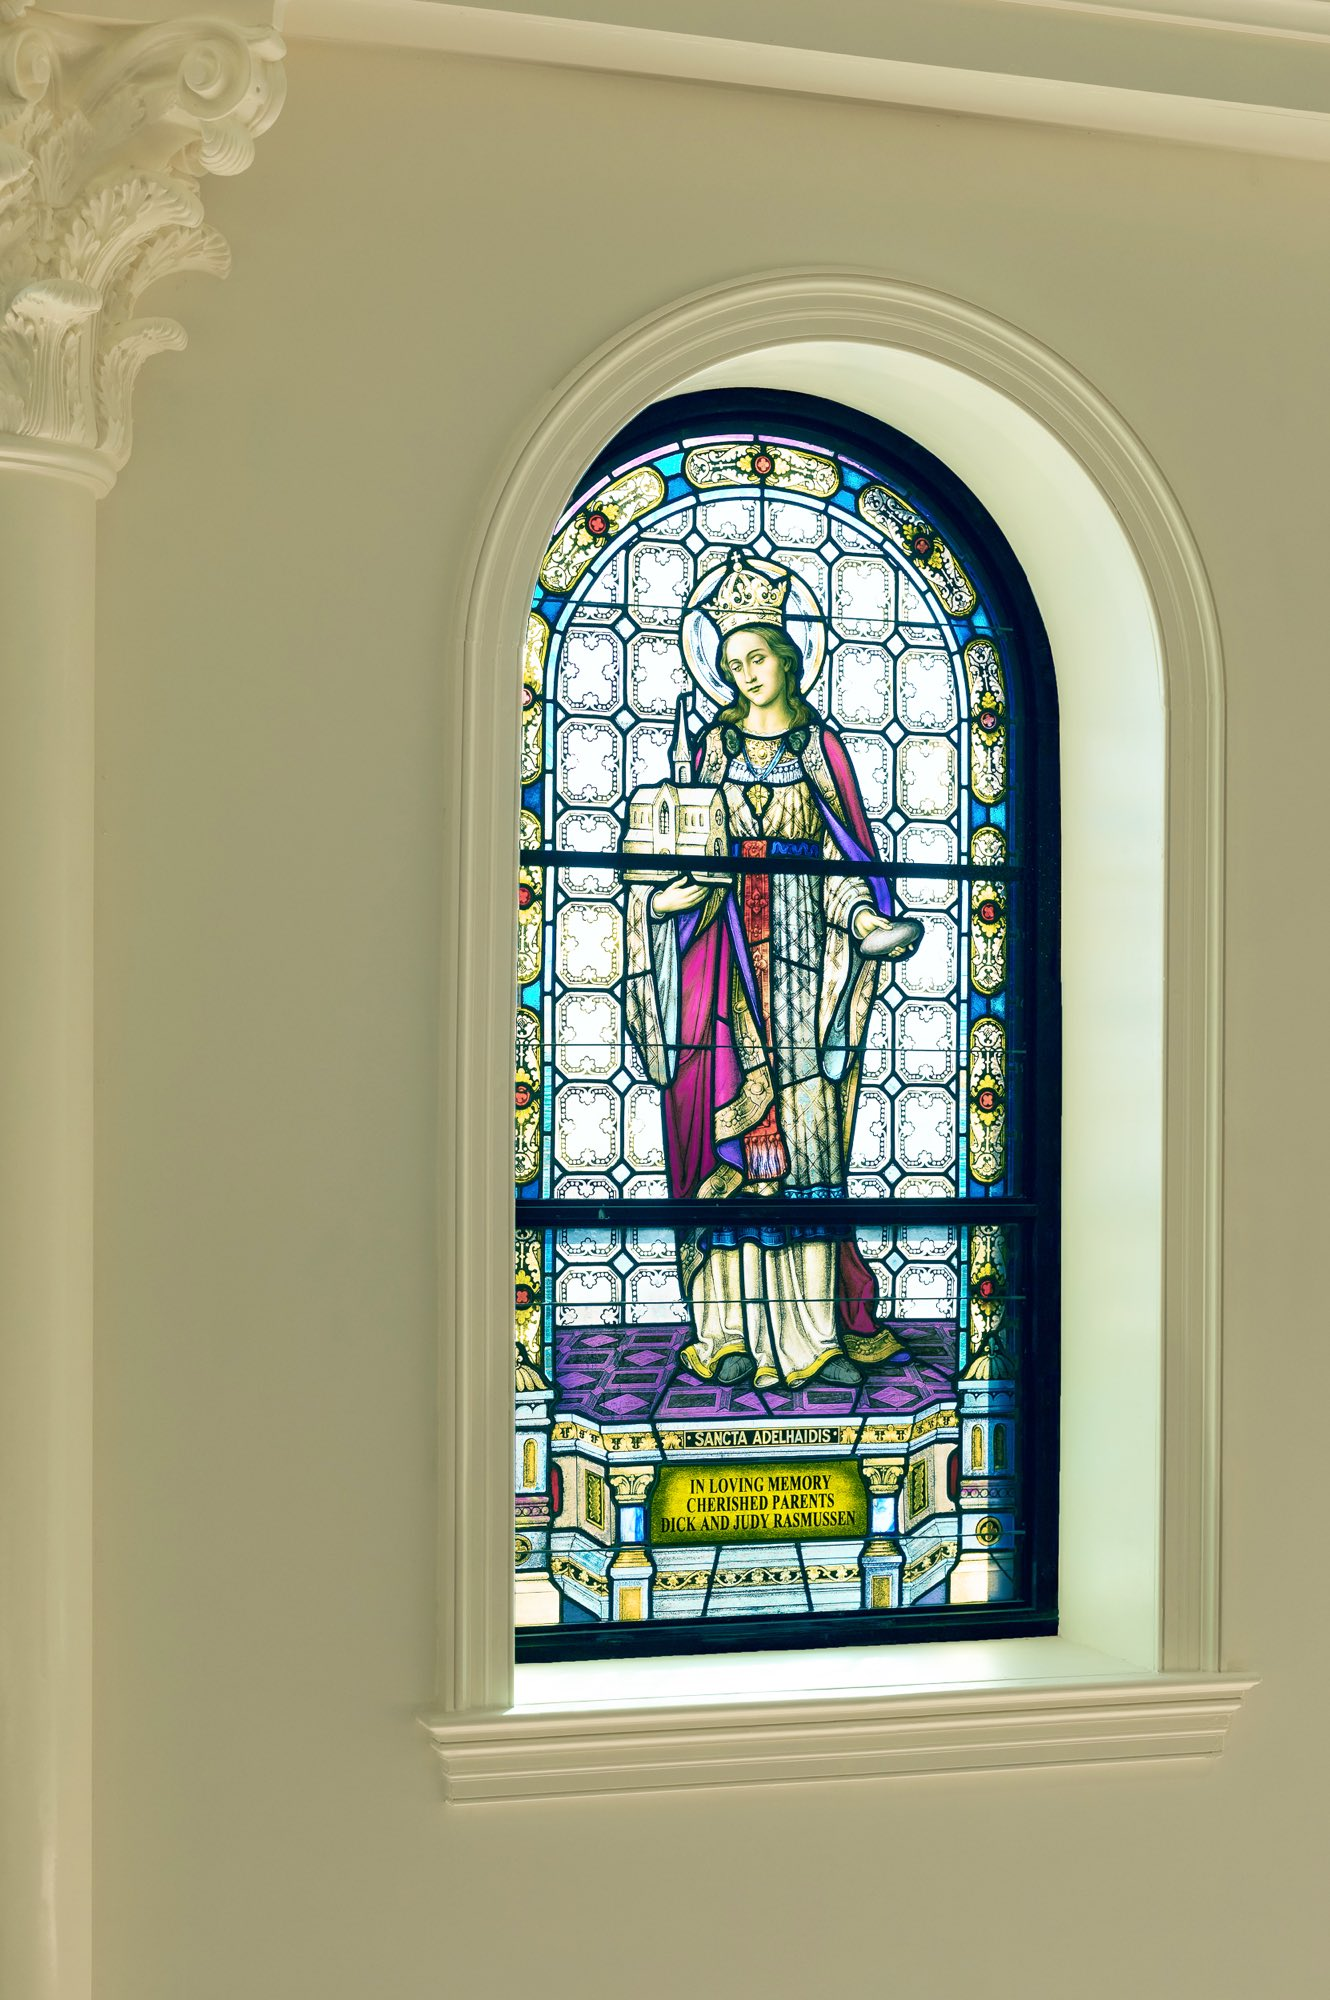 Stained Glass Window colored image of Mary Queen and Mother in arch with Corinthian capital classical by Harrison Design